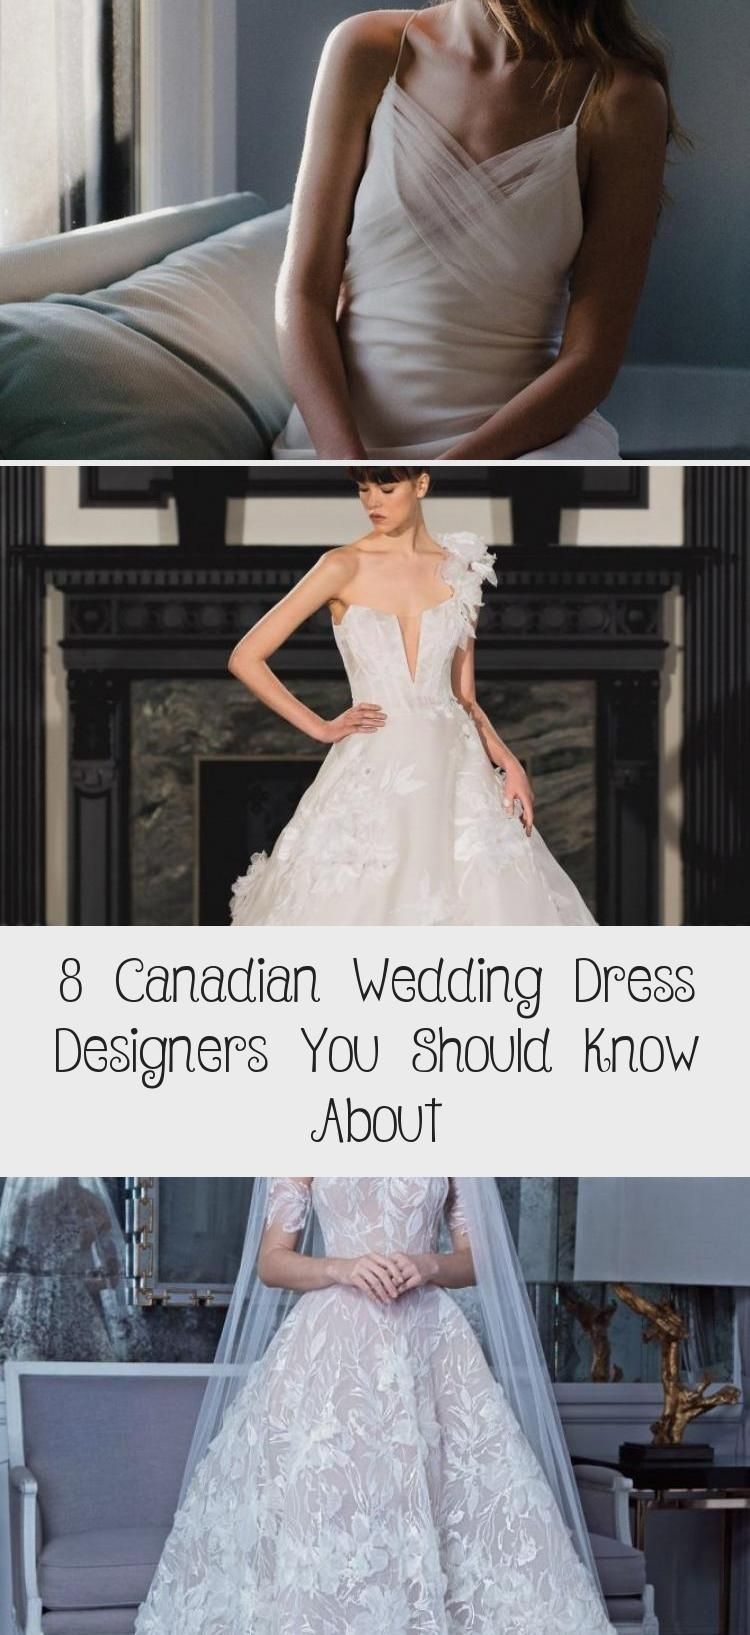 8 Canadian Wedding Dress Designers You Should Know About Romantic And Vintage Inspired Flutter Sleeve L Designer Wedding Dresses Dreamy Gowns Wedding Dresses,Black Dress For Winter Wedding